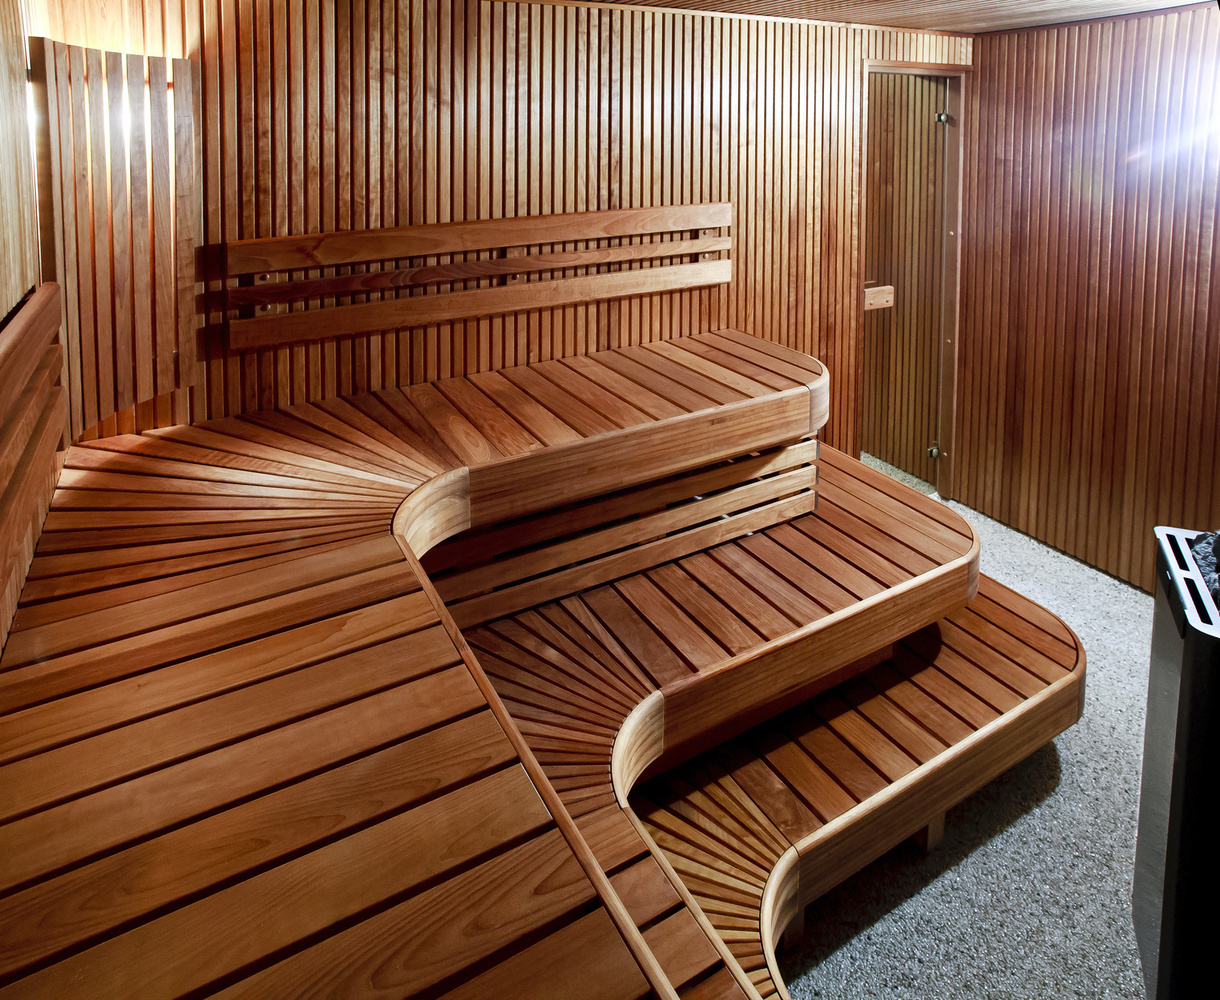 Infrared sauna to detox in Lyme disease treatment Image by Marty Ross MD